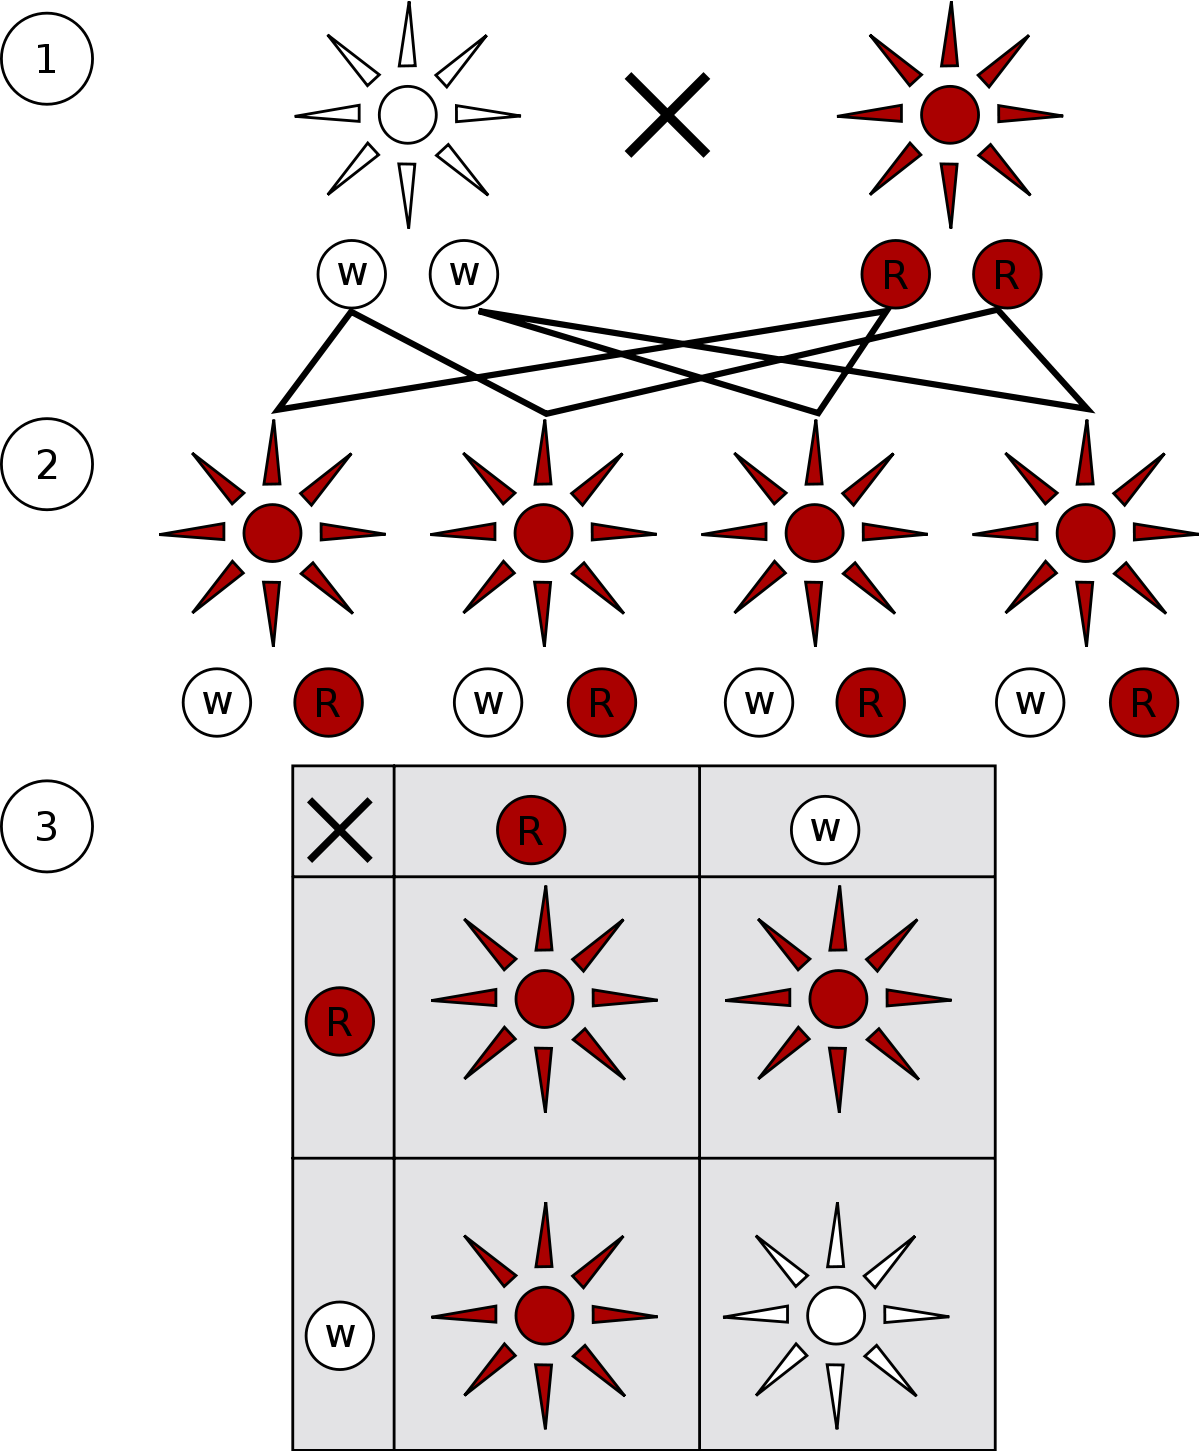 genotype example of incomplete dominance